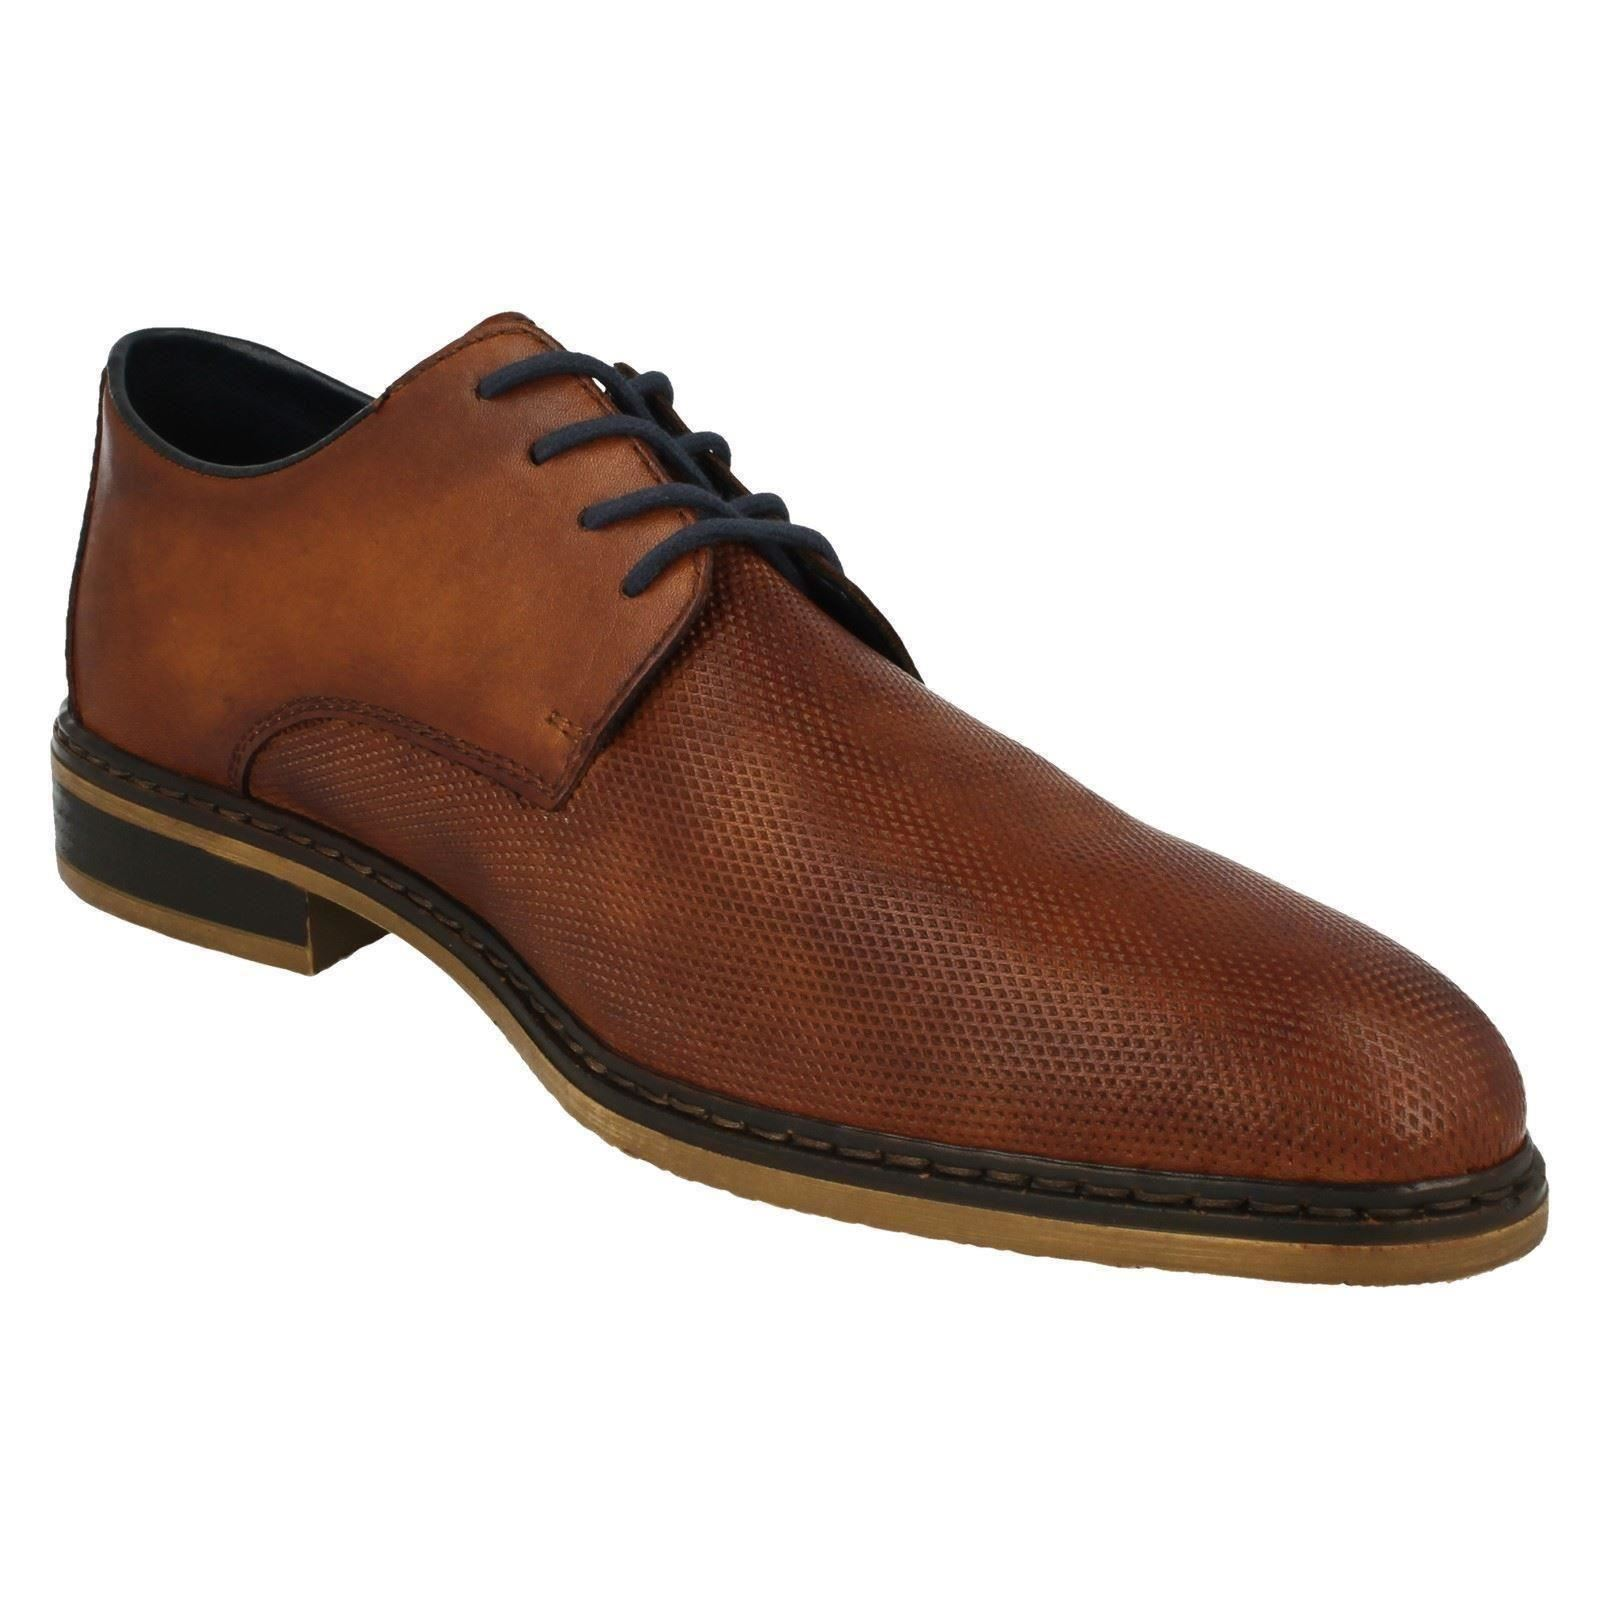 Mens Rieker Brown Lace-Up Shoe - 11415